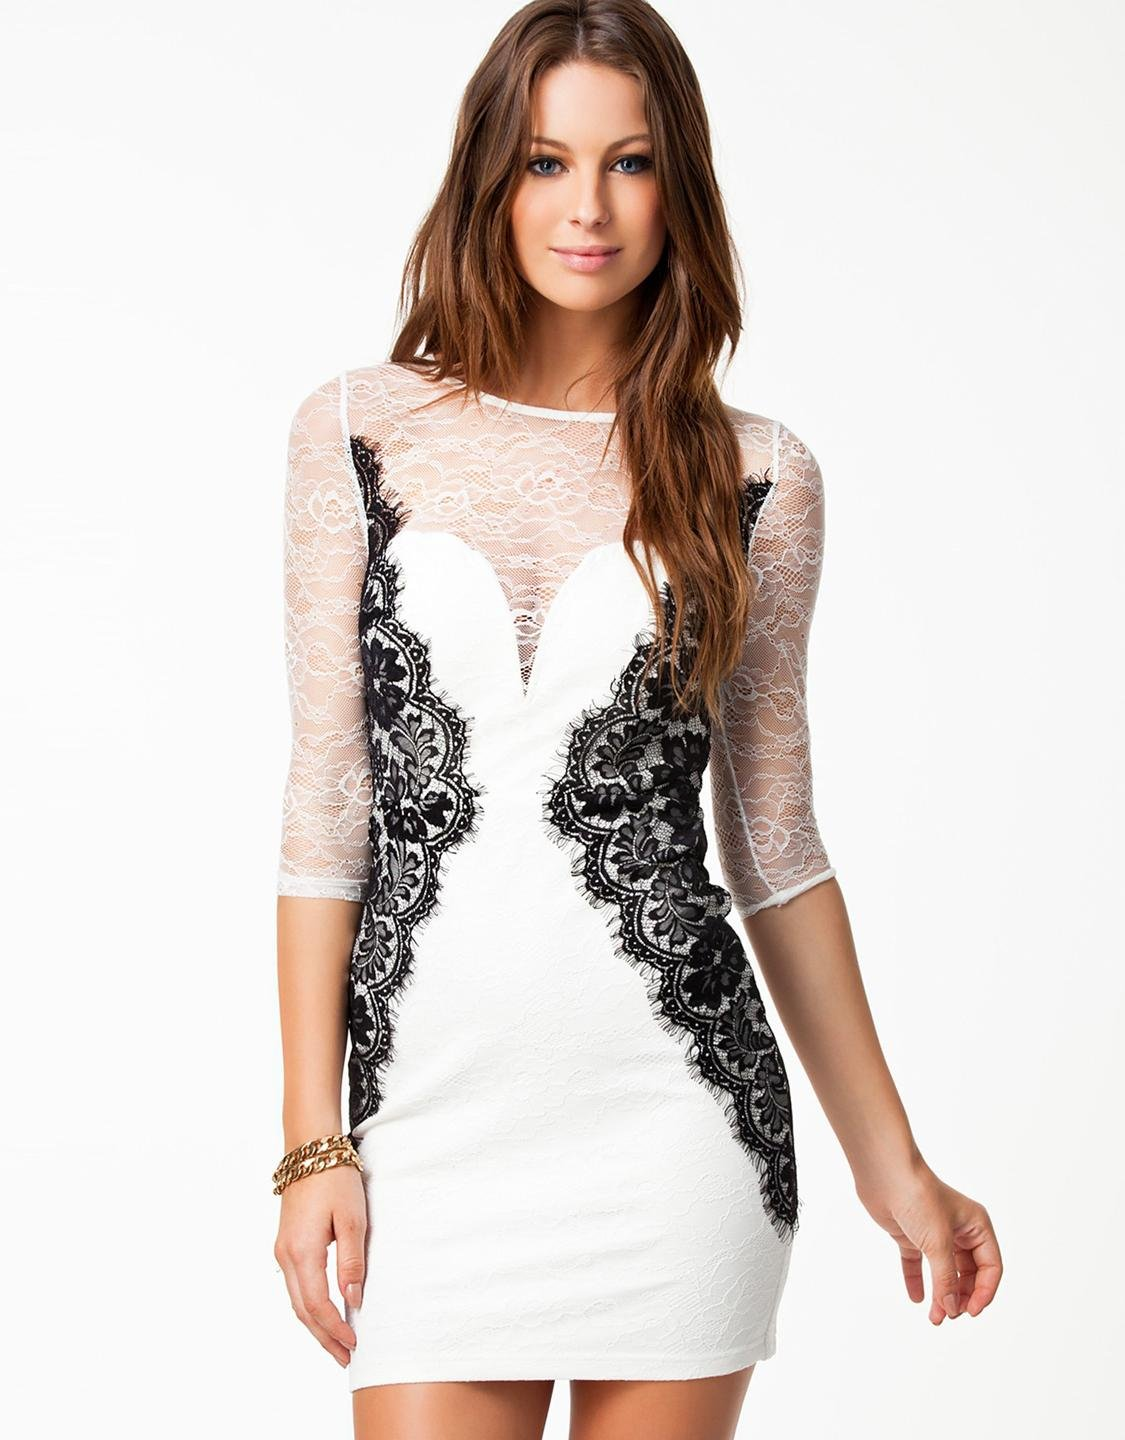 Fashion Long Sleeve White Color XL Size Beauty Lace Bodycon Dress W573922